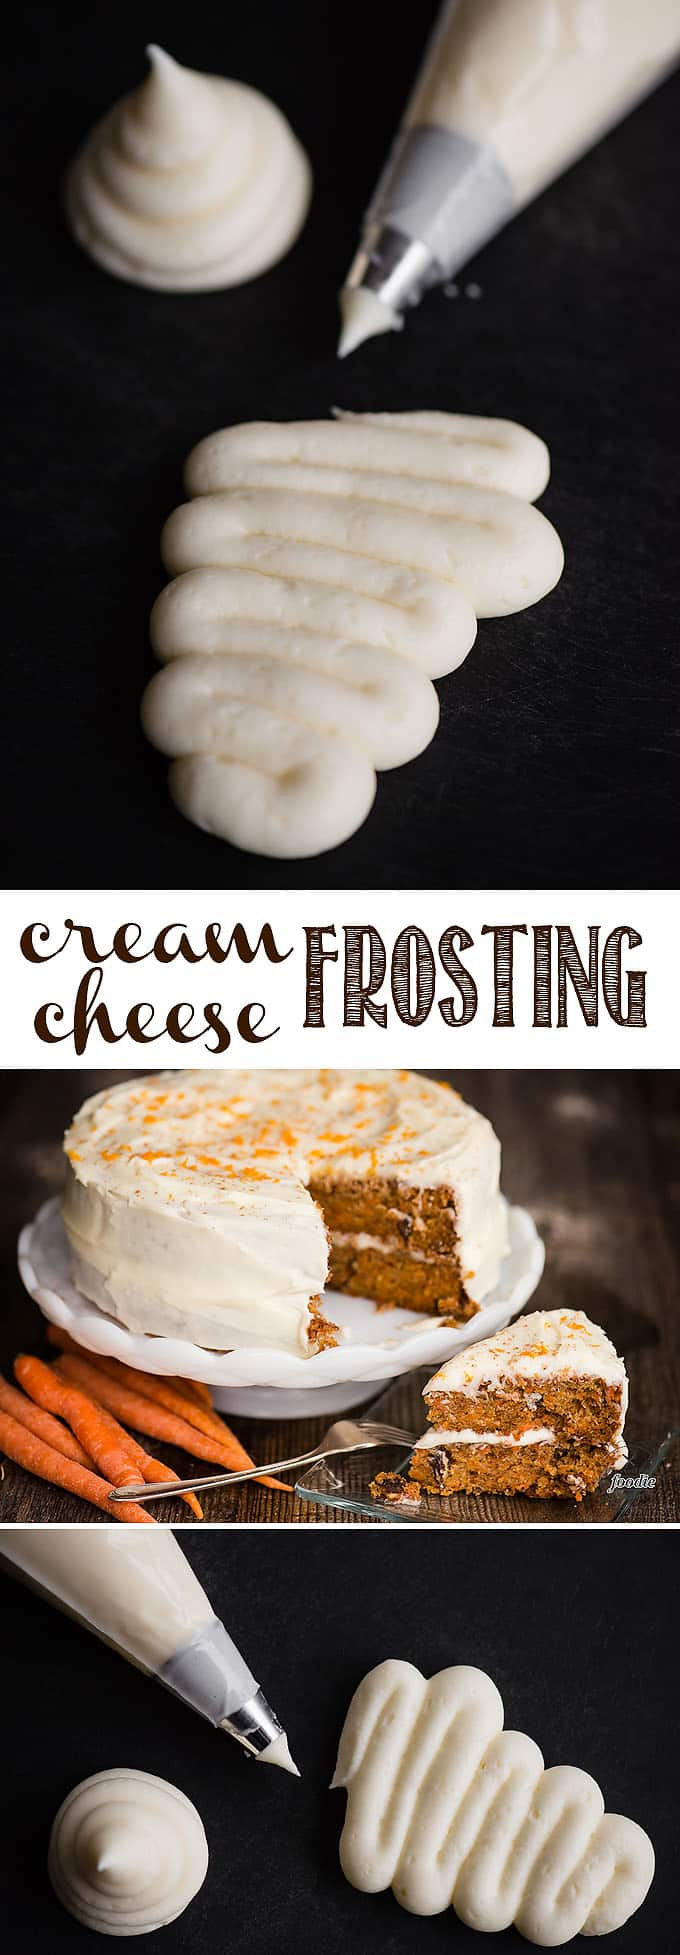 Cream Cheese Frosting is an American favorite when it comes to topping cakes and cupcakes. Just a few ingredients come together to form a super sweet, smooth, and decadent frosting that pairs with just about any kind of cake. There are a few tips and tricks with the ingredients and mixing needed to make it perfect! #frosting #creamcheese #creamcheesefrosting #cake #cupcakes